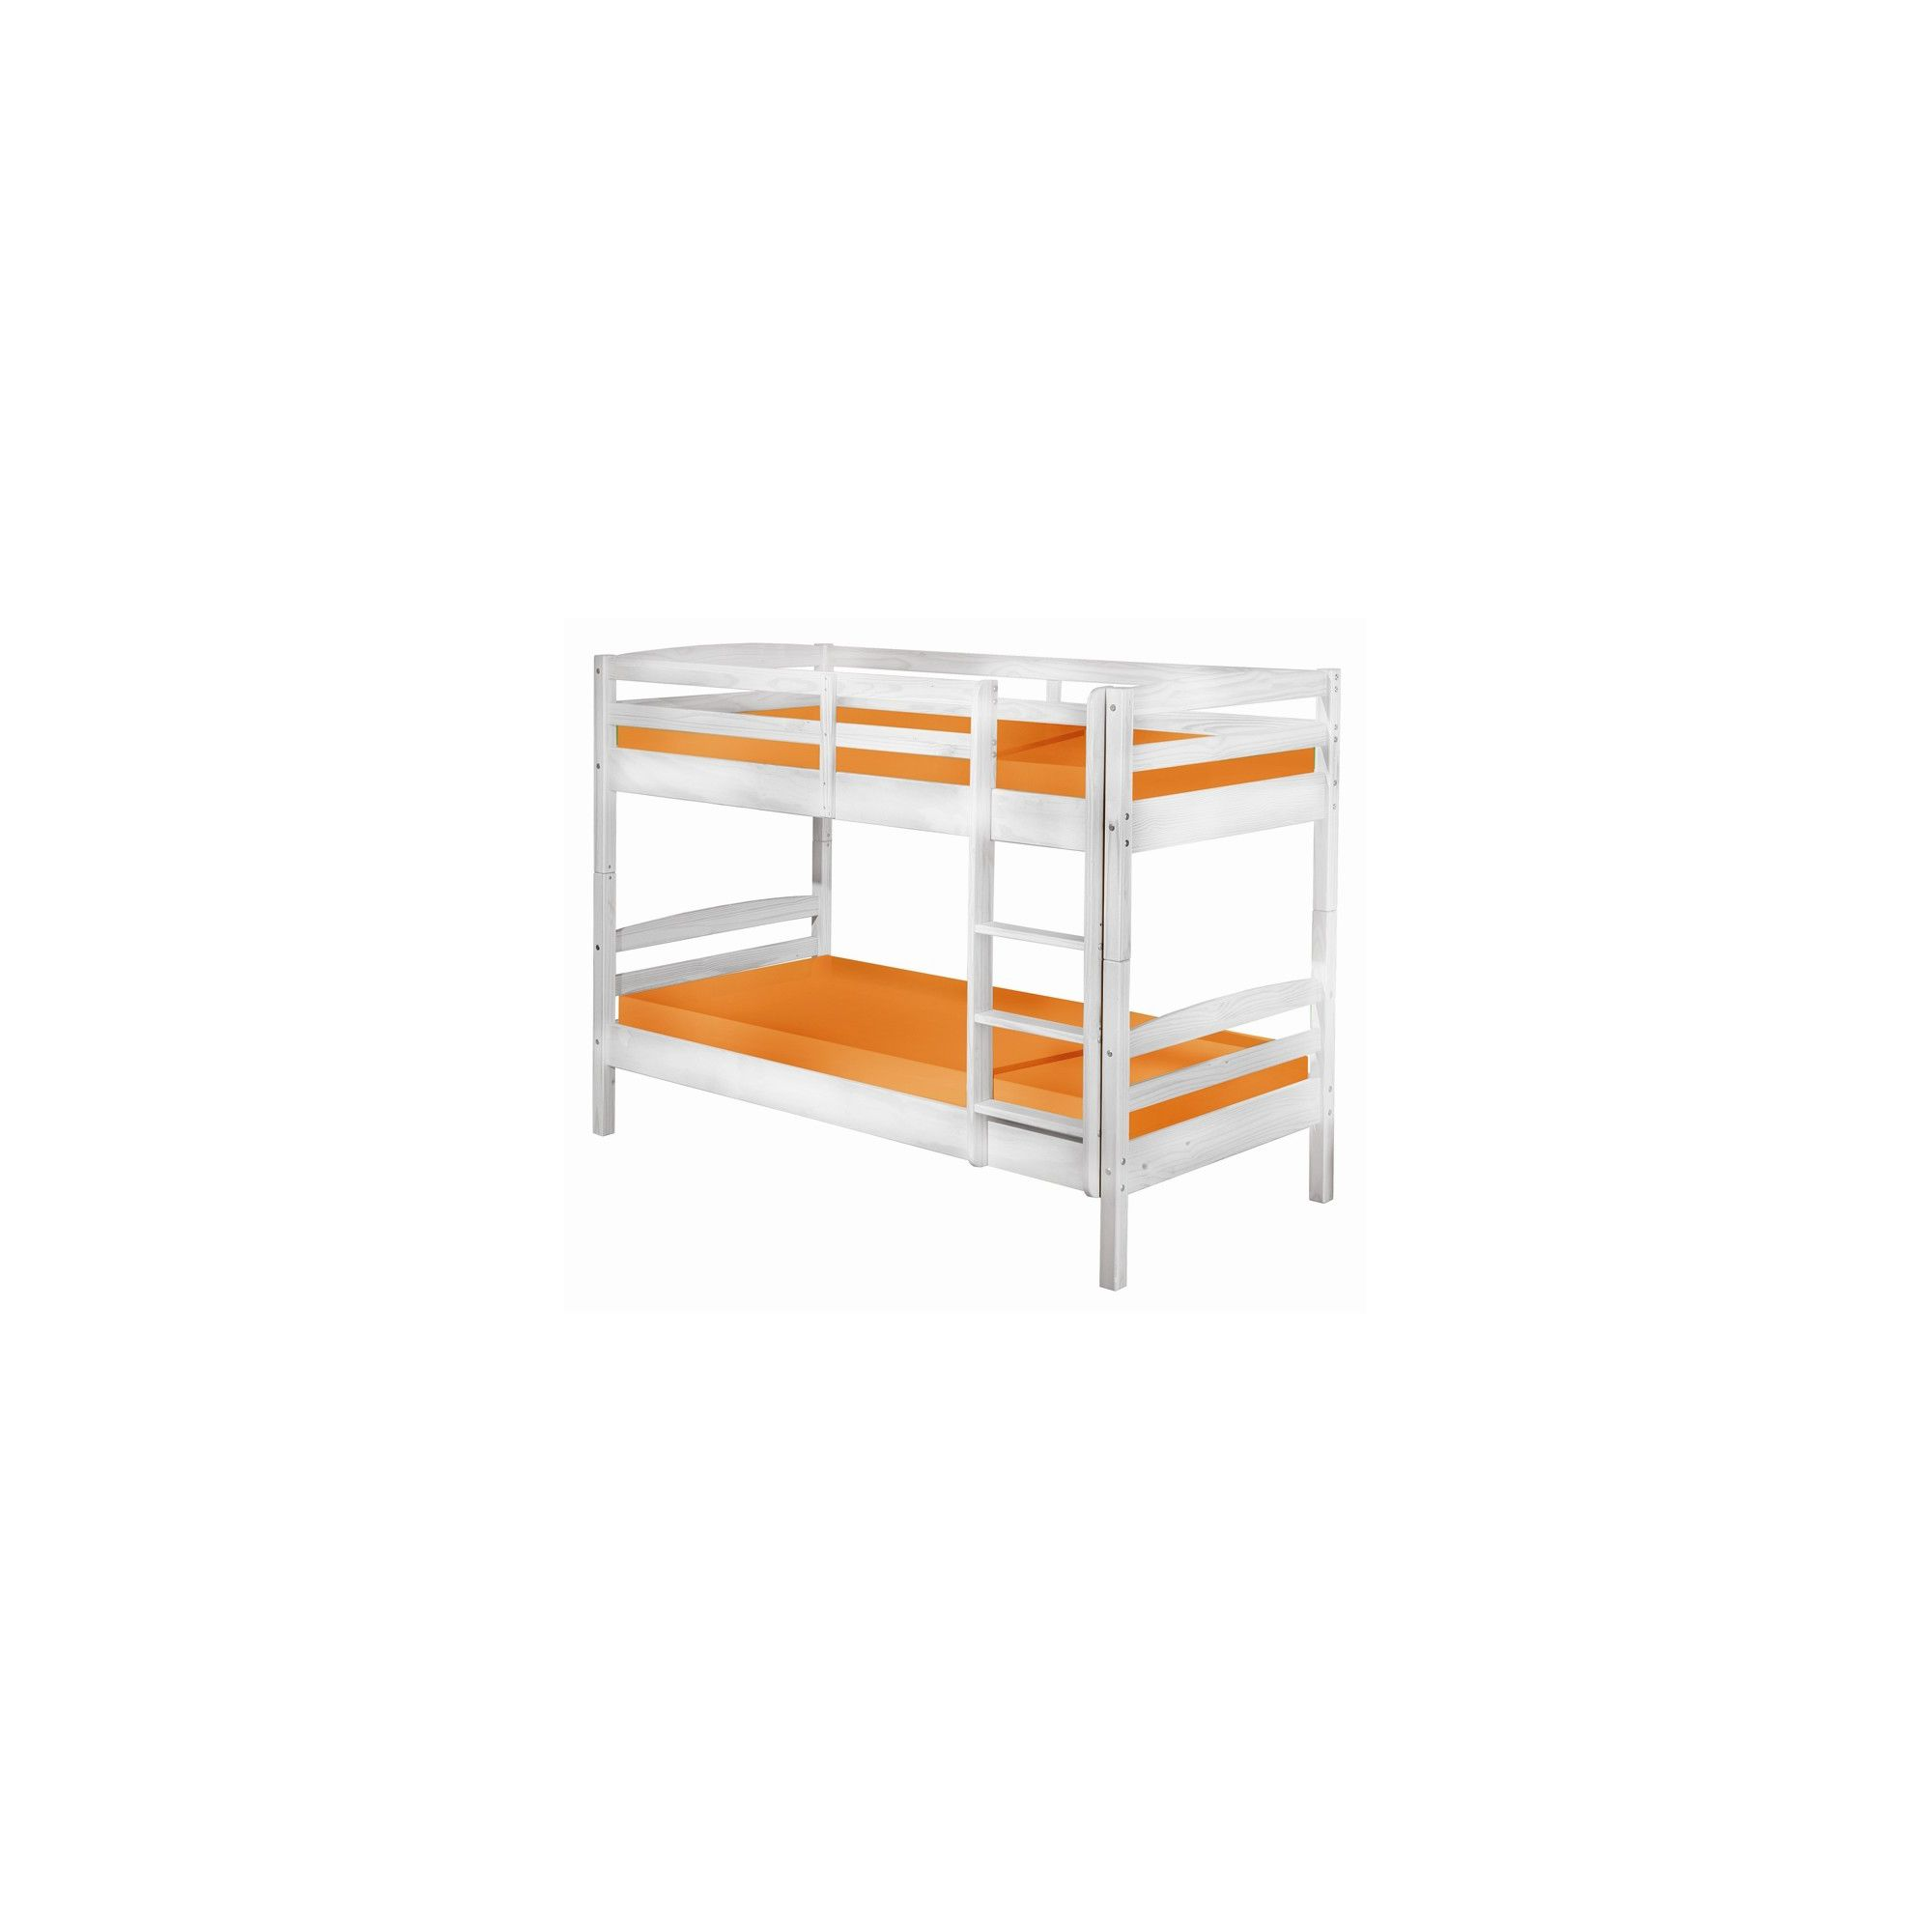 Aspect Design Rick Solid Wood Bunk Bed in White at Tescos Direct